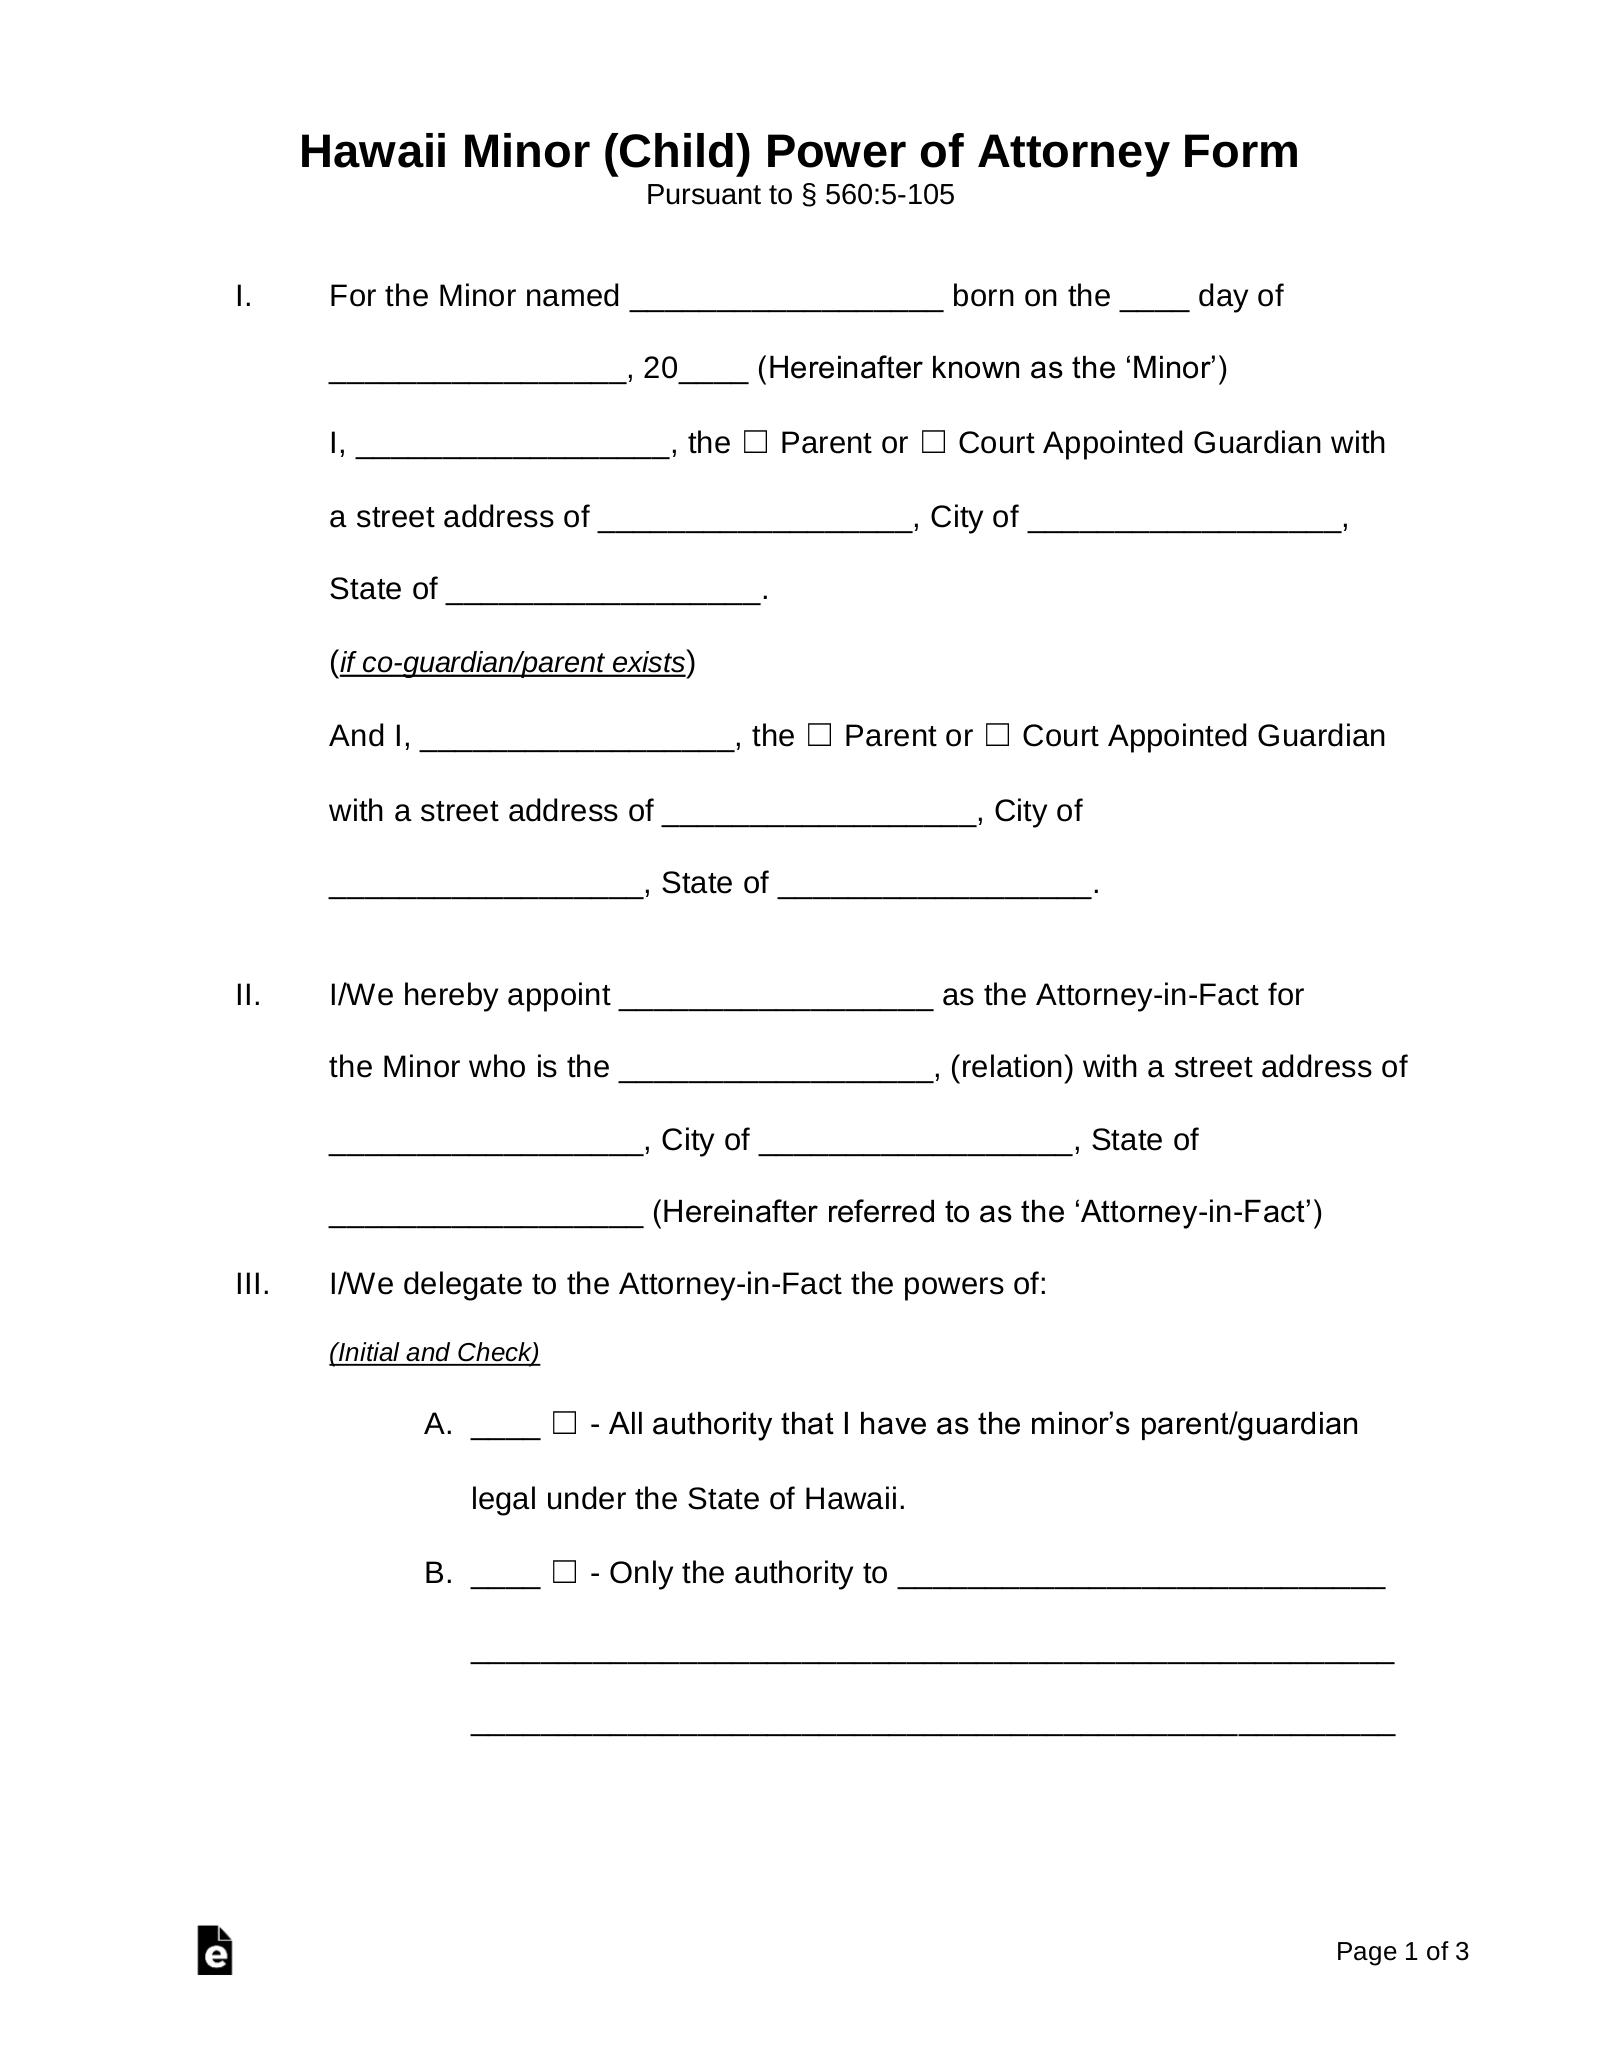 power of attorney form hawaii state  Free Hawaii Power of Attorney for a Minor Child Form - PDF ...